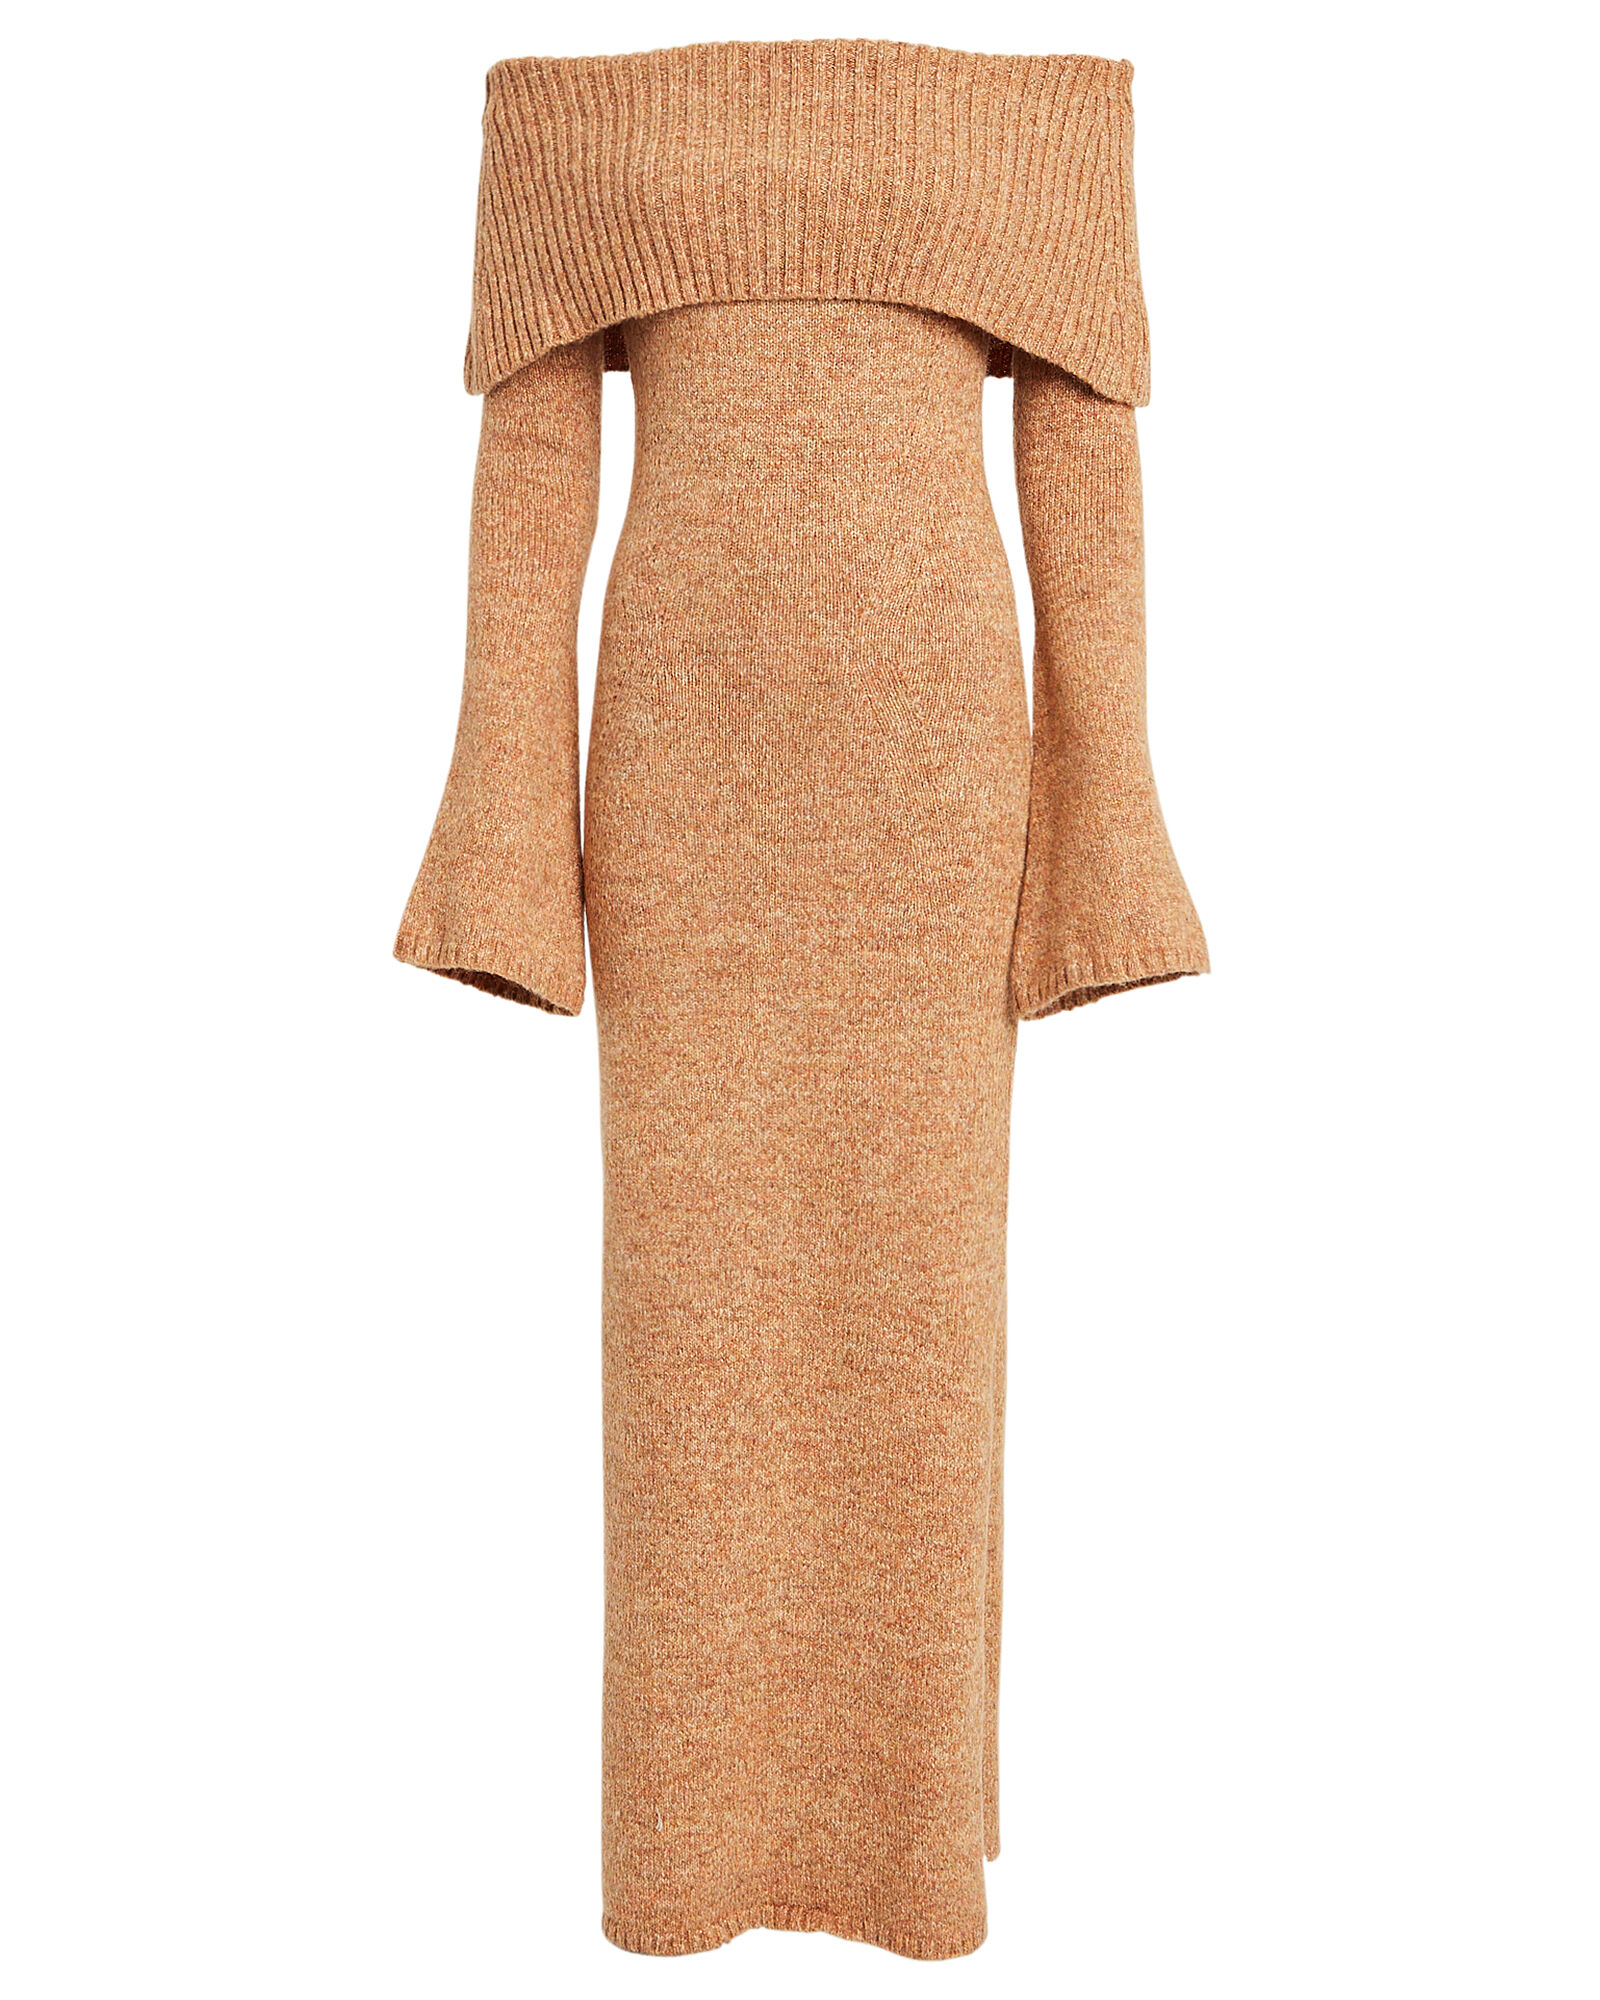 Mariel Sweater Dress, GOLDEN OAK, hi-res